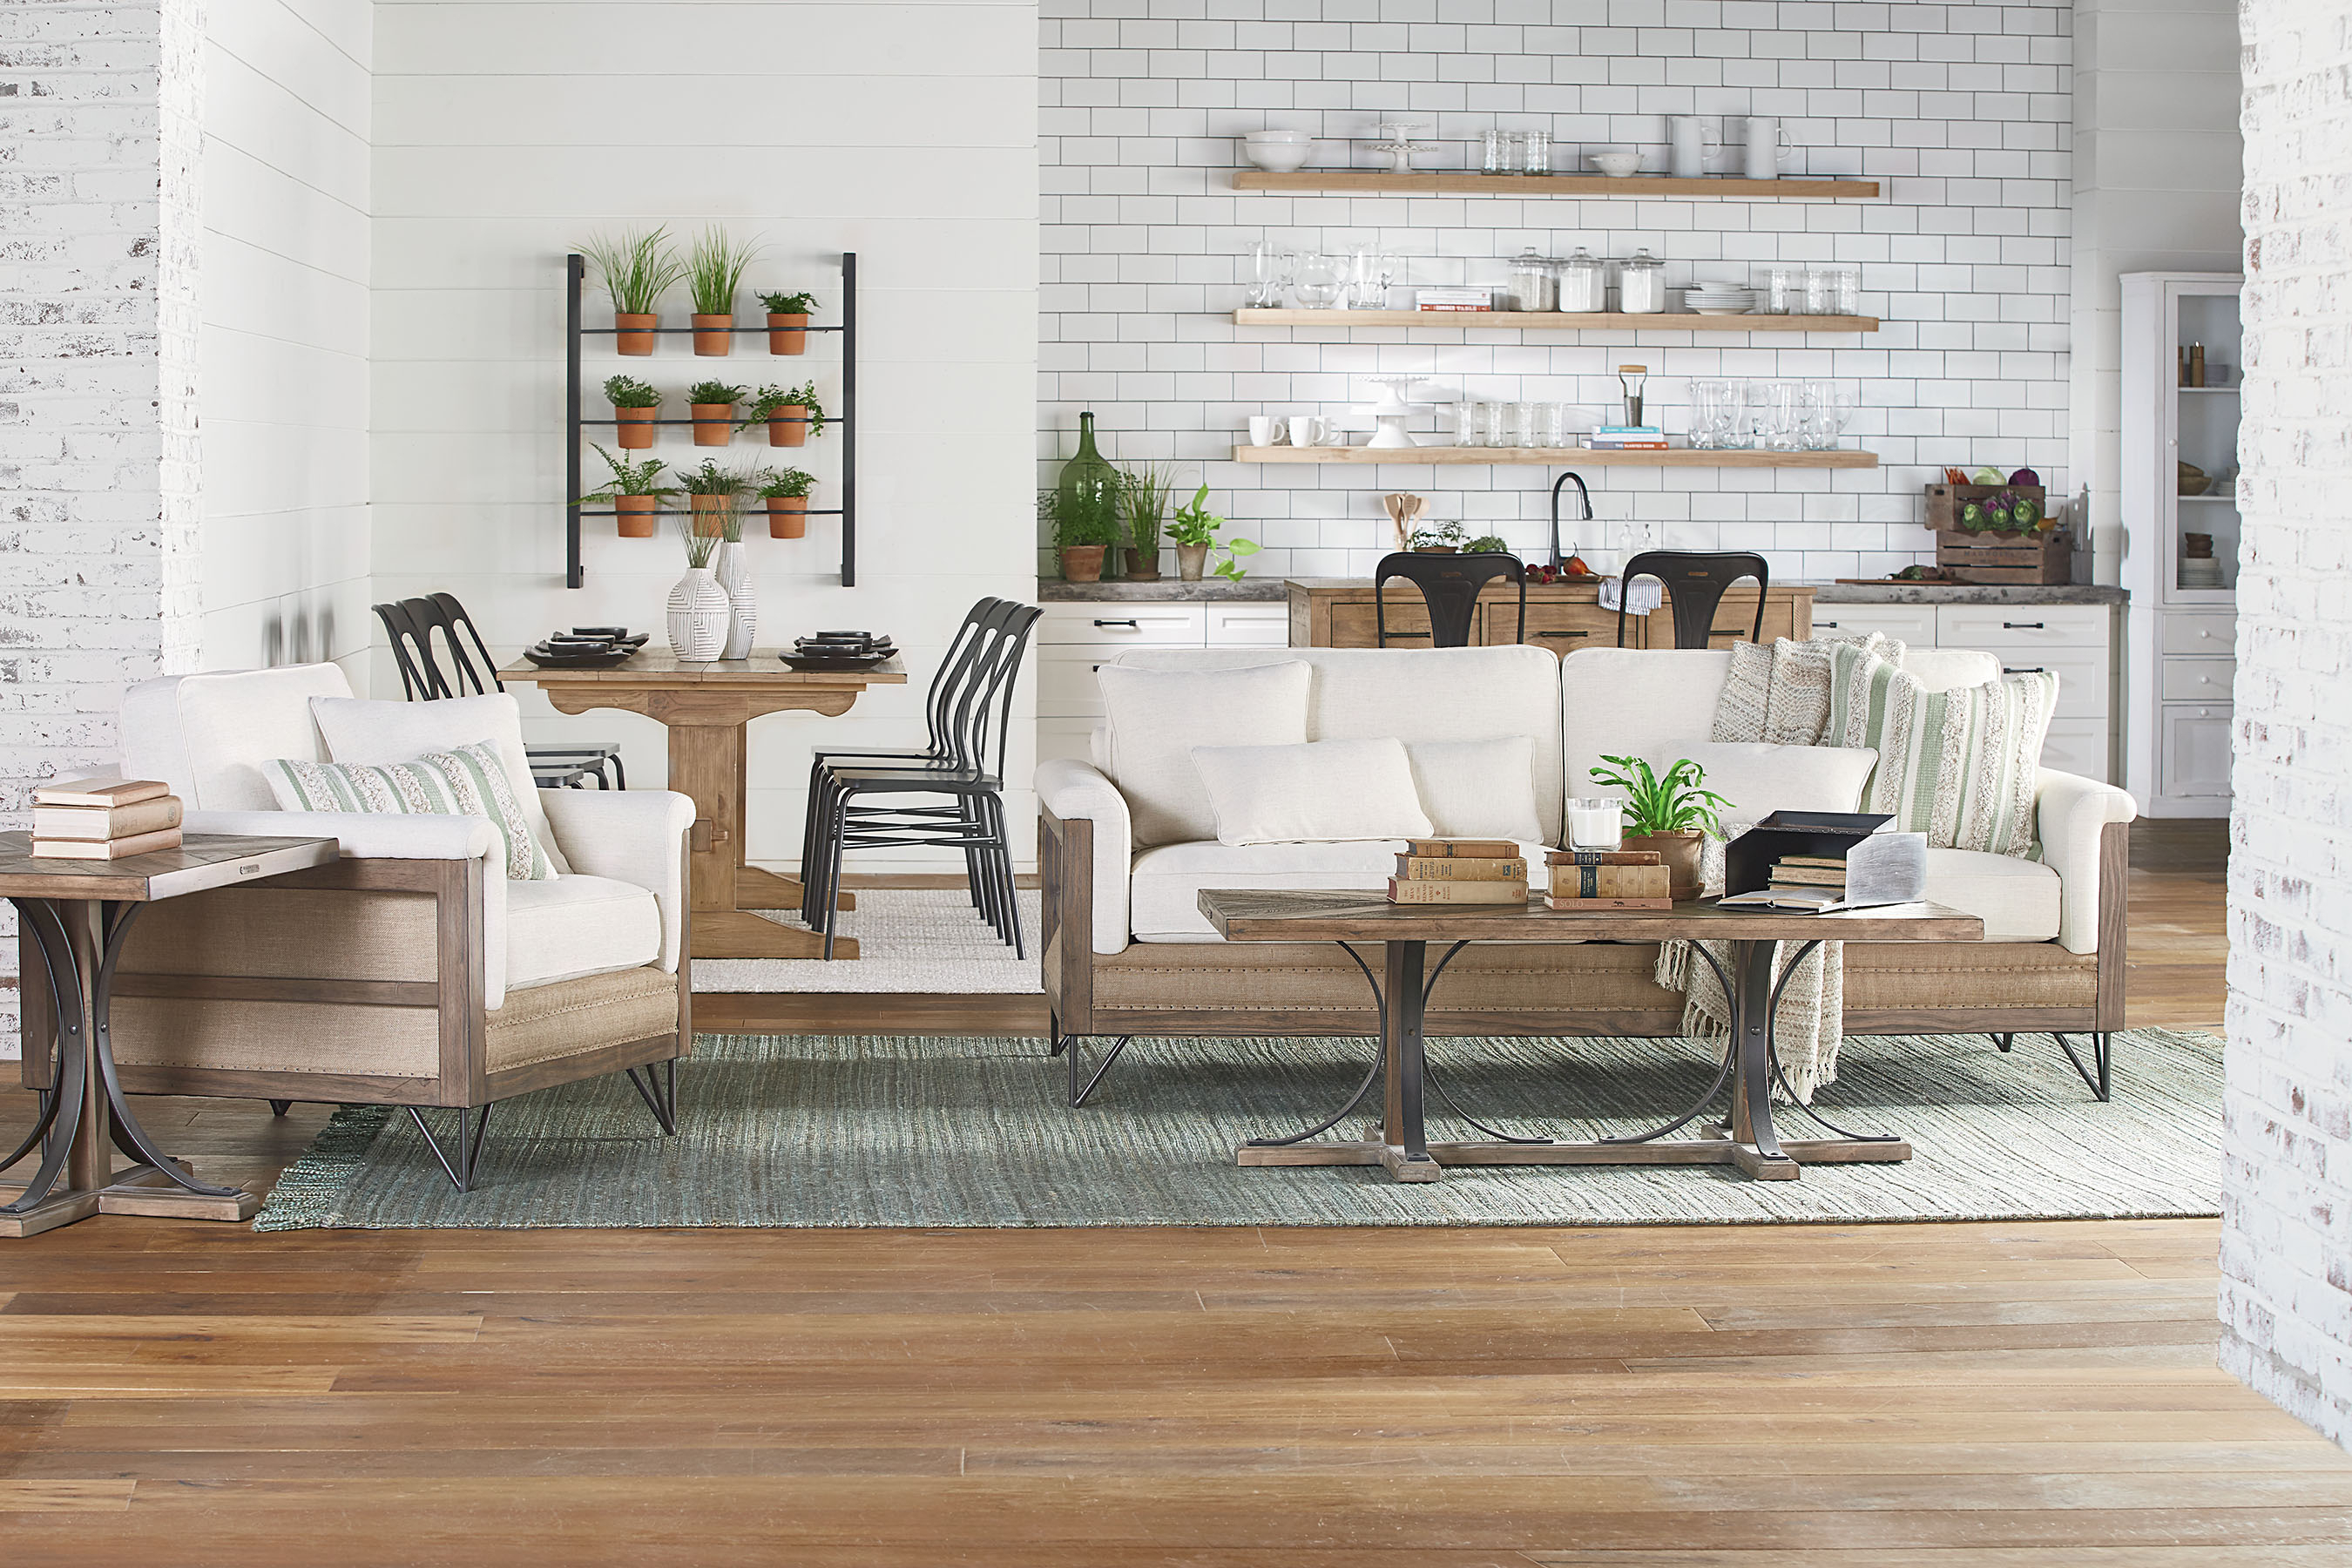 Paradigm Sofa – Magnolia Home In Magnolia Home Paradigm Sofa Chairs By Joanna Gaines (View 2 of 25)